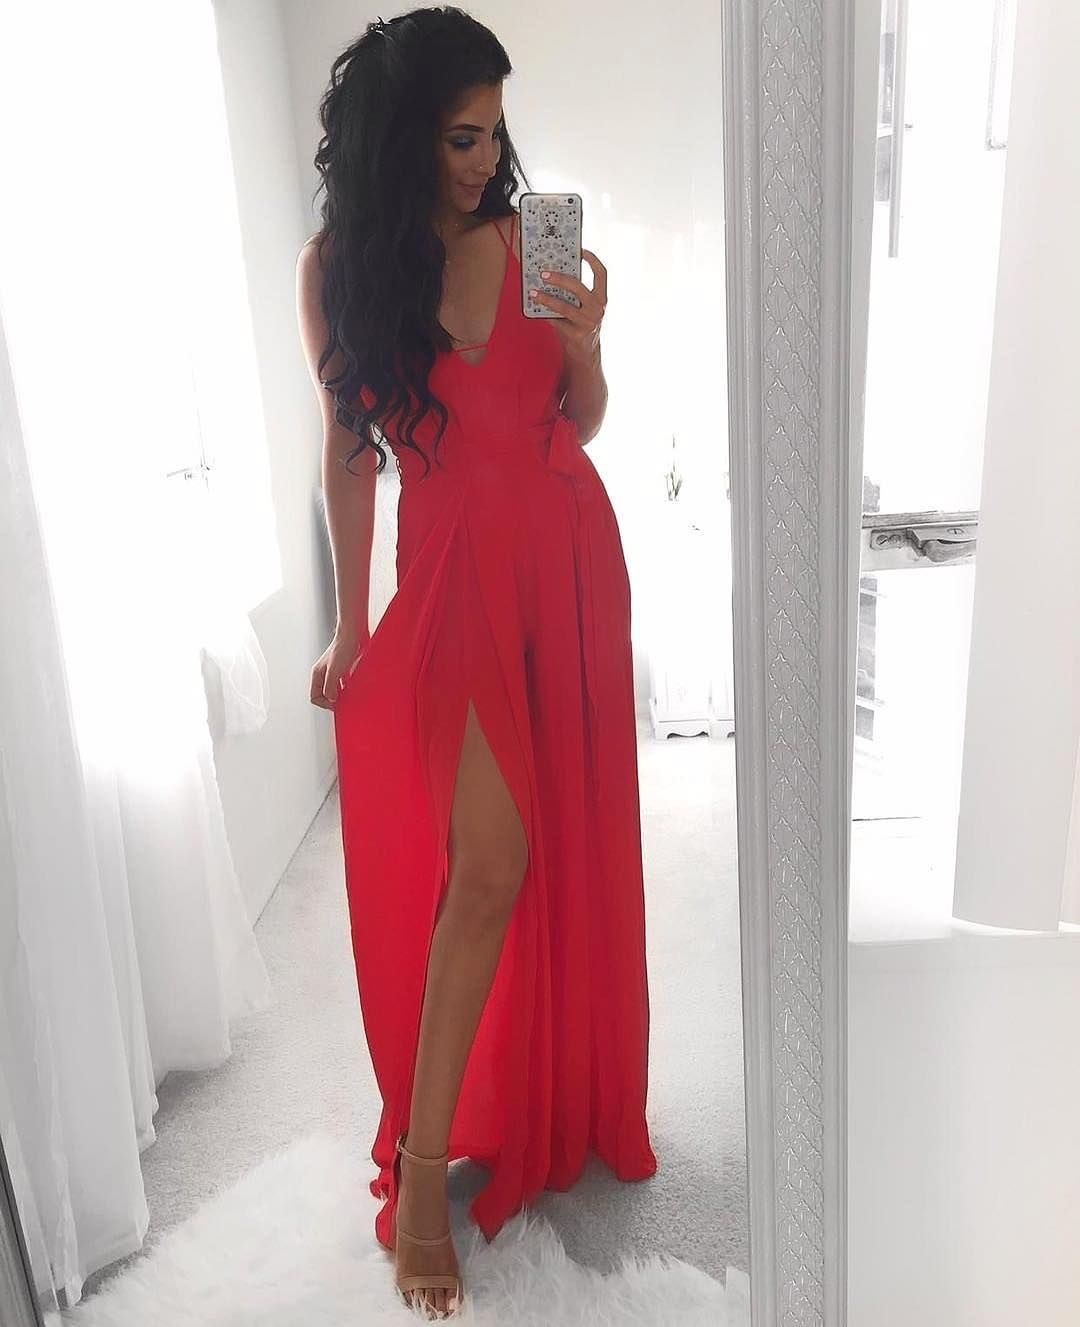 Donna Red Wide Leg Slit Jumpsuit Restocked Worn Here By Elwa__